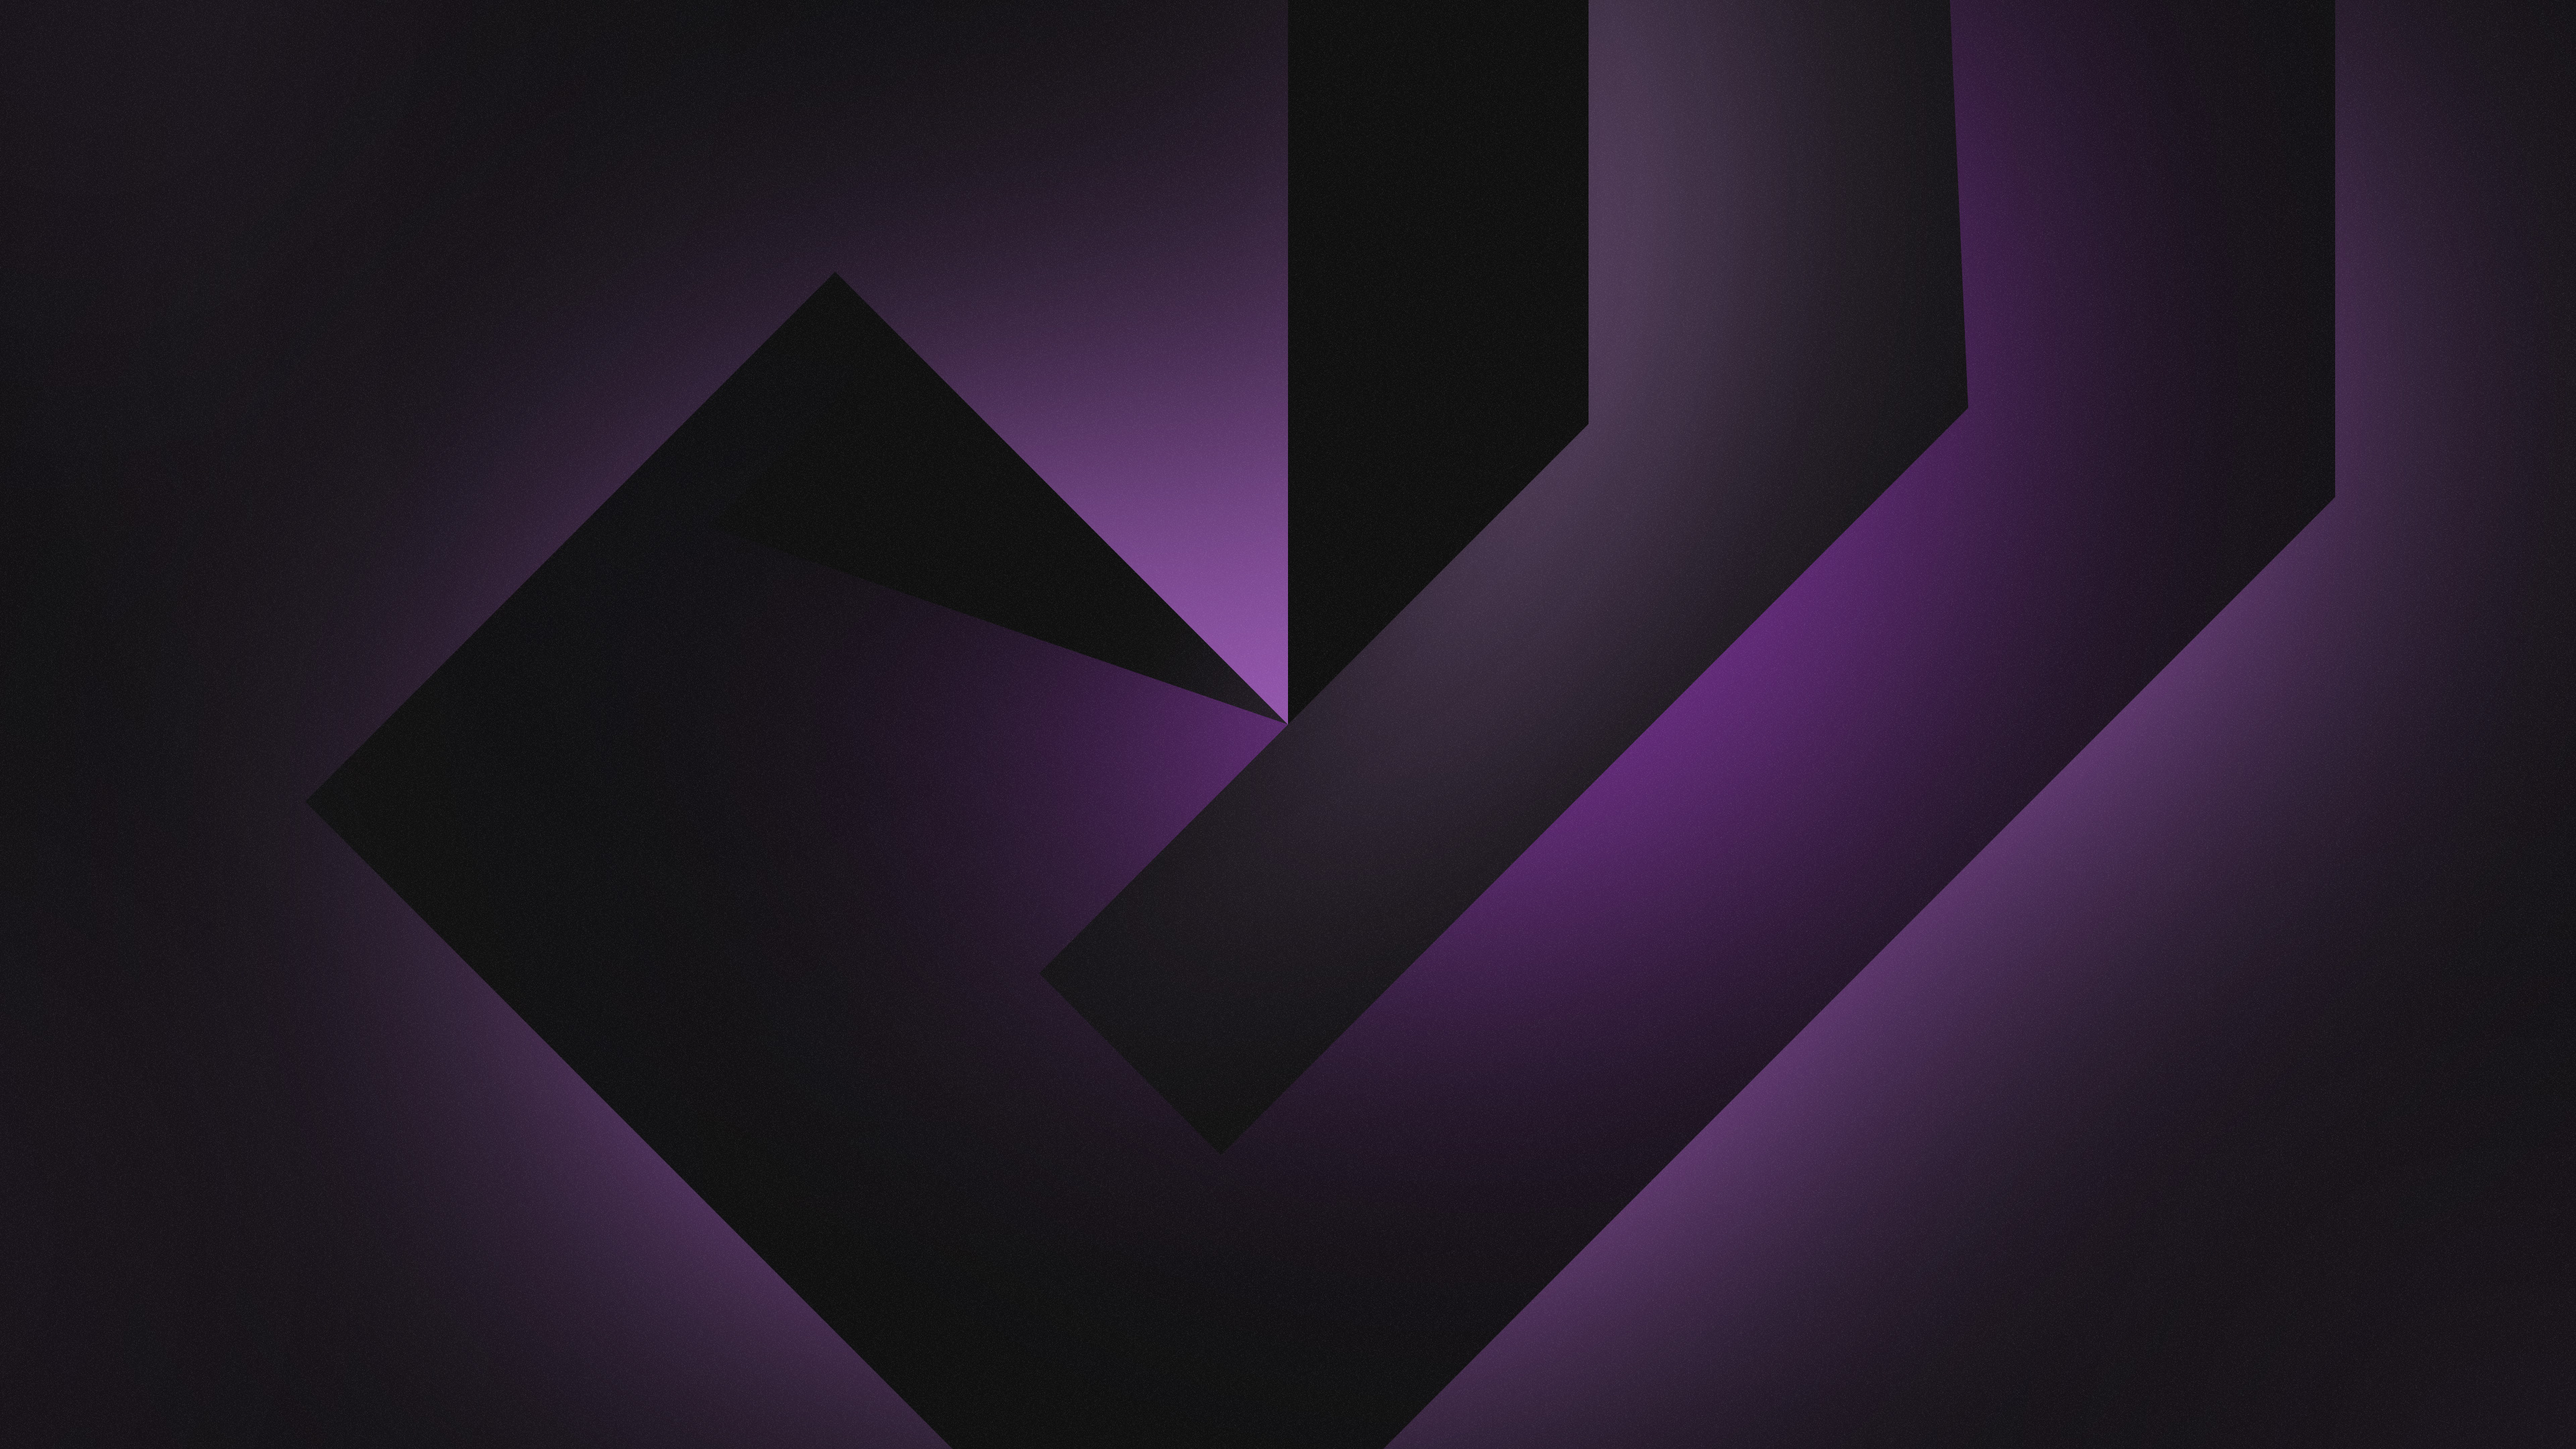 abstract dark purple 4k 1539371377 - Abstract Dark Purple 4k - shapes wallpapers, hd-wallpapers, graphics wallpapers, dark wallpapers, behance wallpapers, abstract wallpapers, 4k-wallpapers